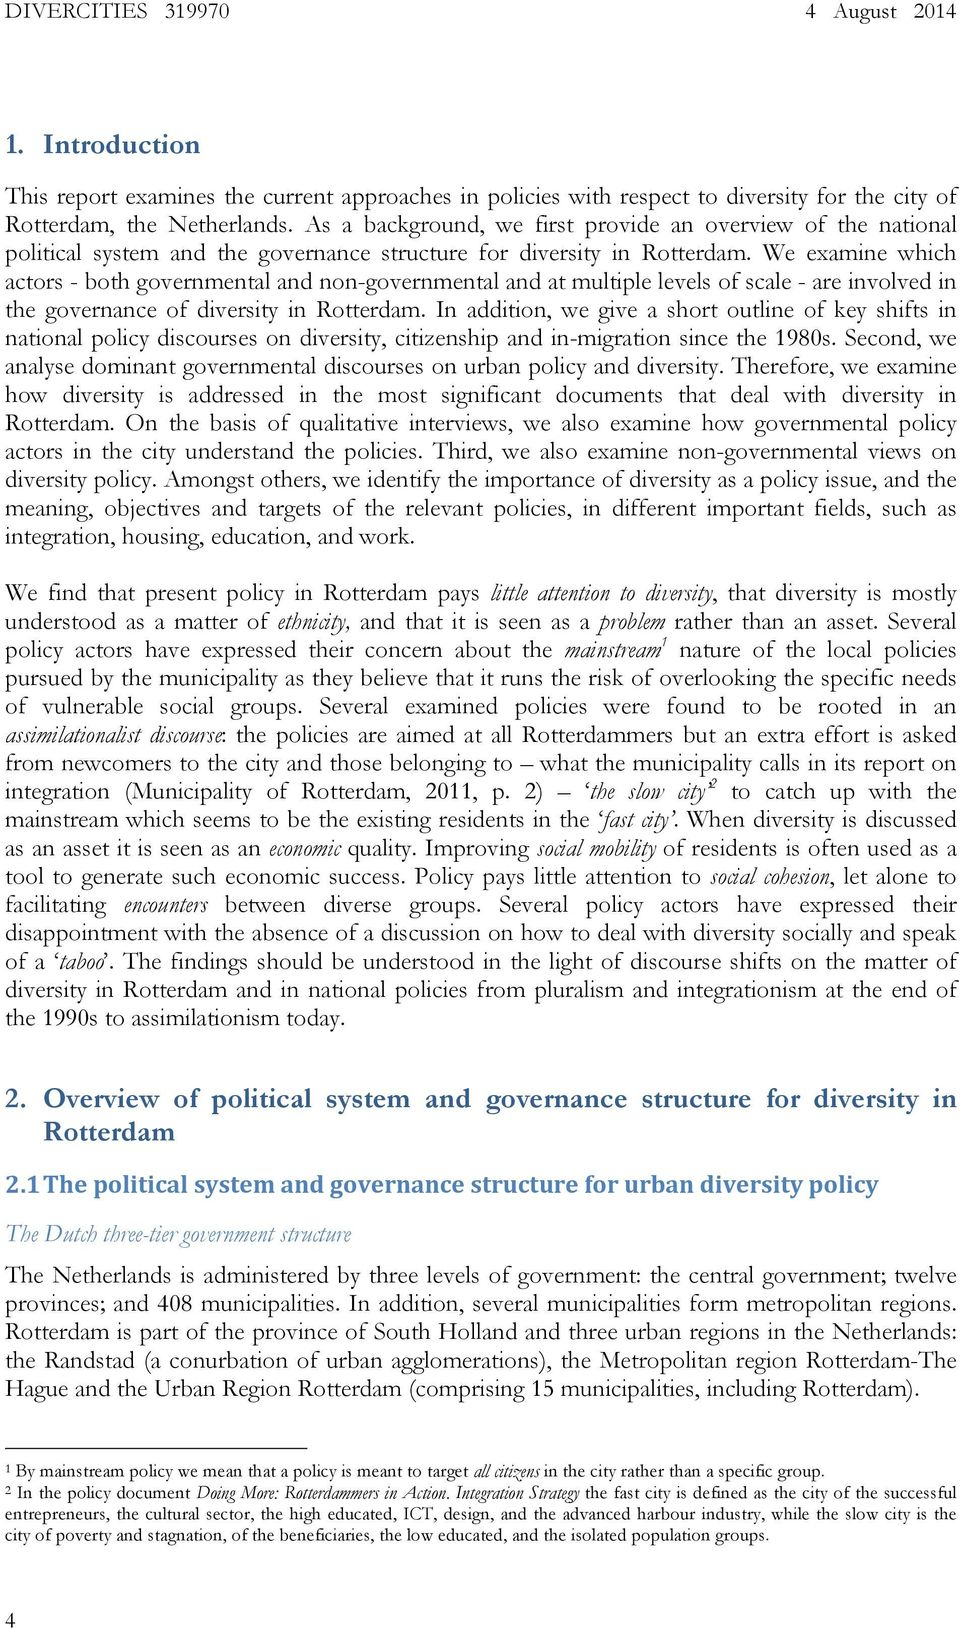 We examine which actors - both governmental and non-governmental and at multiple levels of scale - are involved in the governance of diversity in Rotterdam.